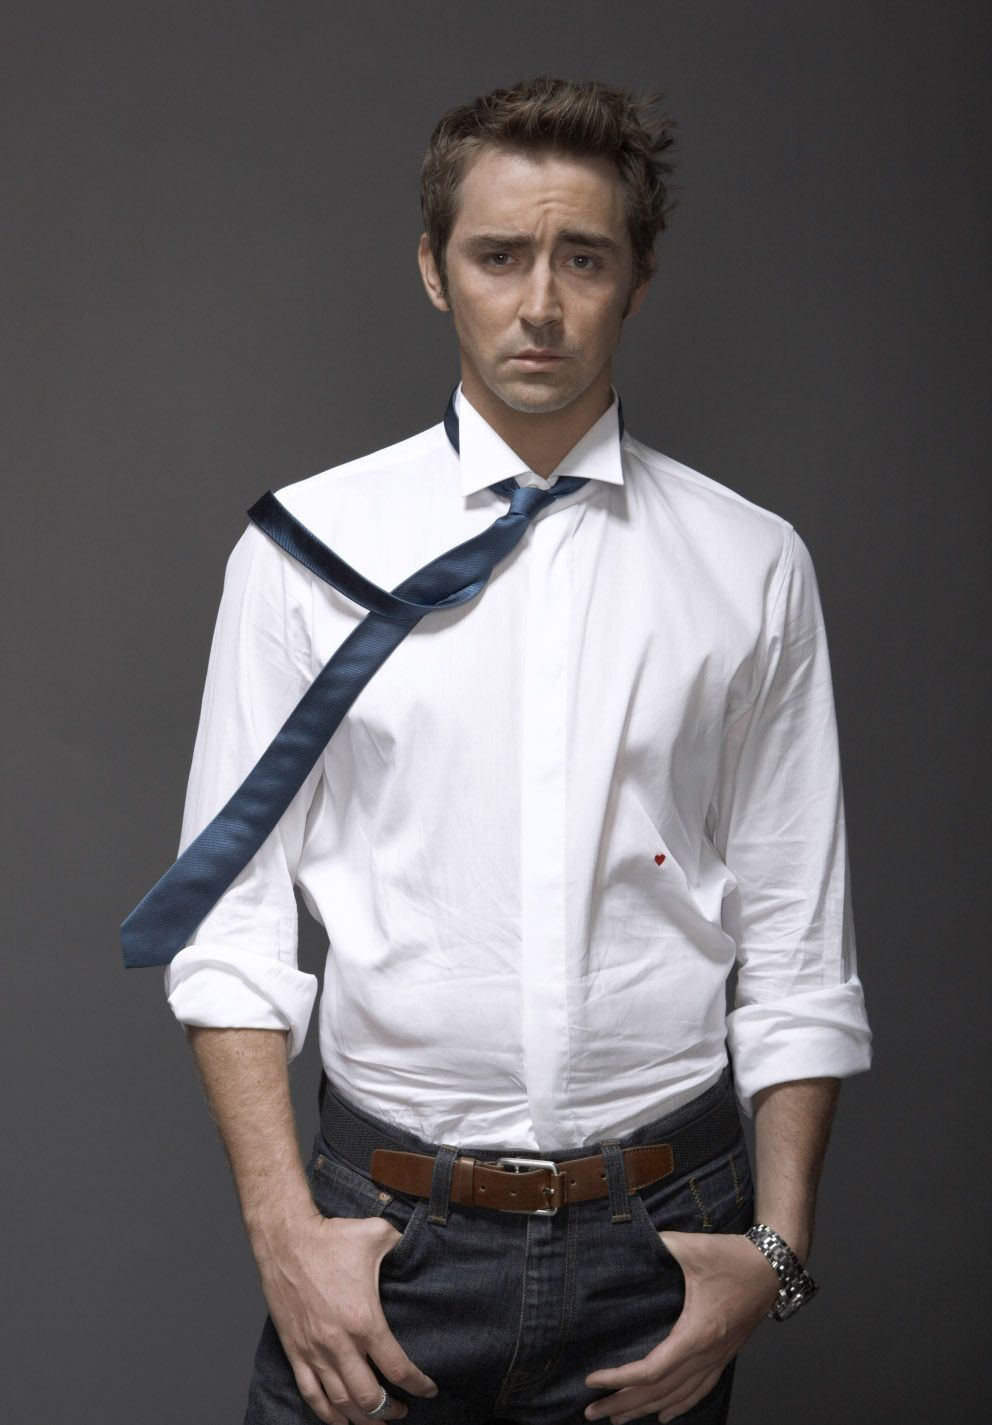 lee pace hobbitlee pace instagram, lee pace gif, lee pace 2016, lee pace vk, lee pace 2017, lee pace height, lee pace wiki, lee pace hobbit, lee pace photoshoot, lee pace кинопоиск, lee pace interview, lee pace movies, lee pace личная жизнь, lee pace news, lee pace weibo, lee pace gif tumblr, lee pace garrett, lee pace beard, lee pace gif hunt, lee pace imdb